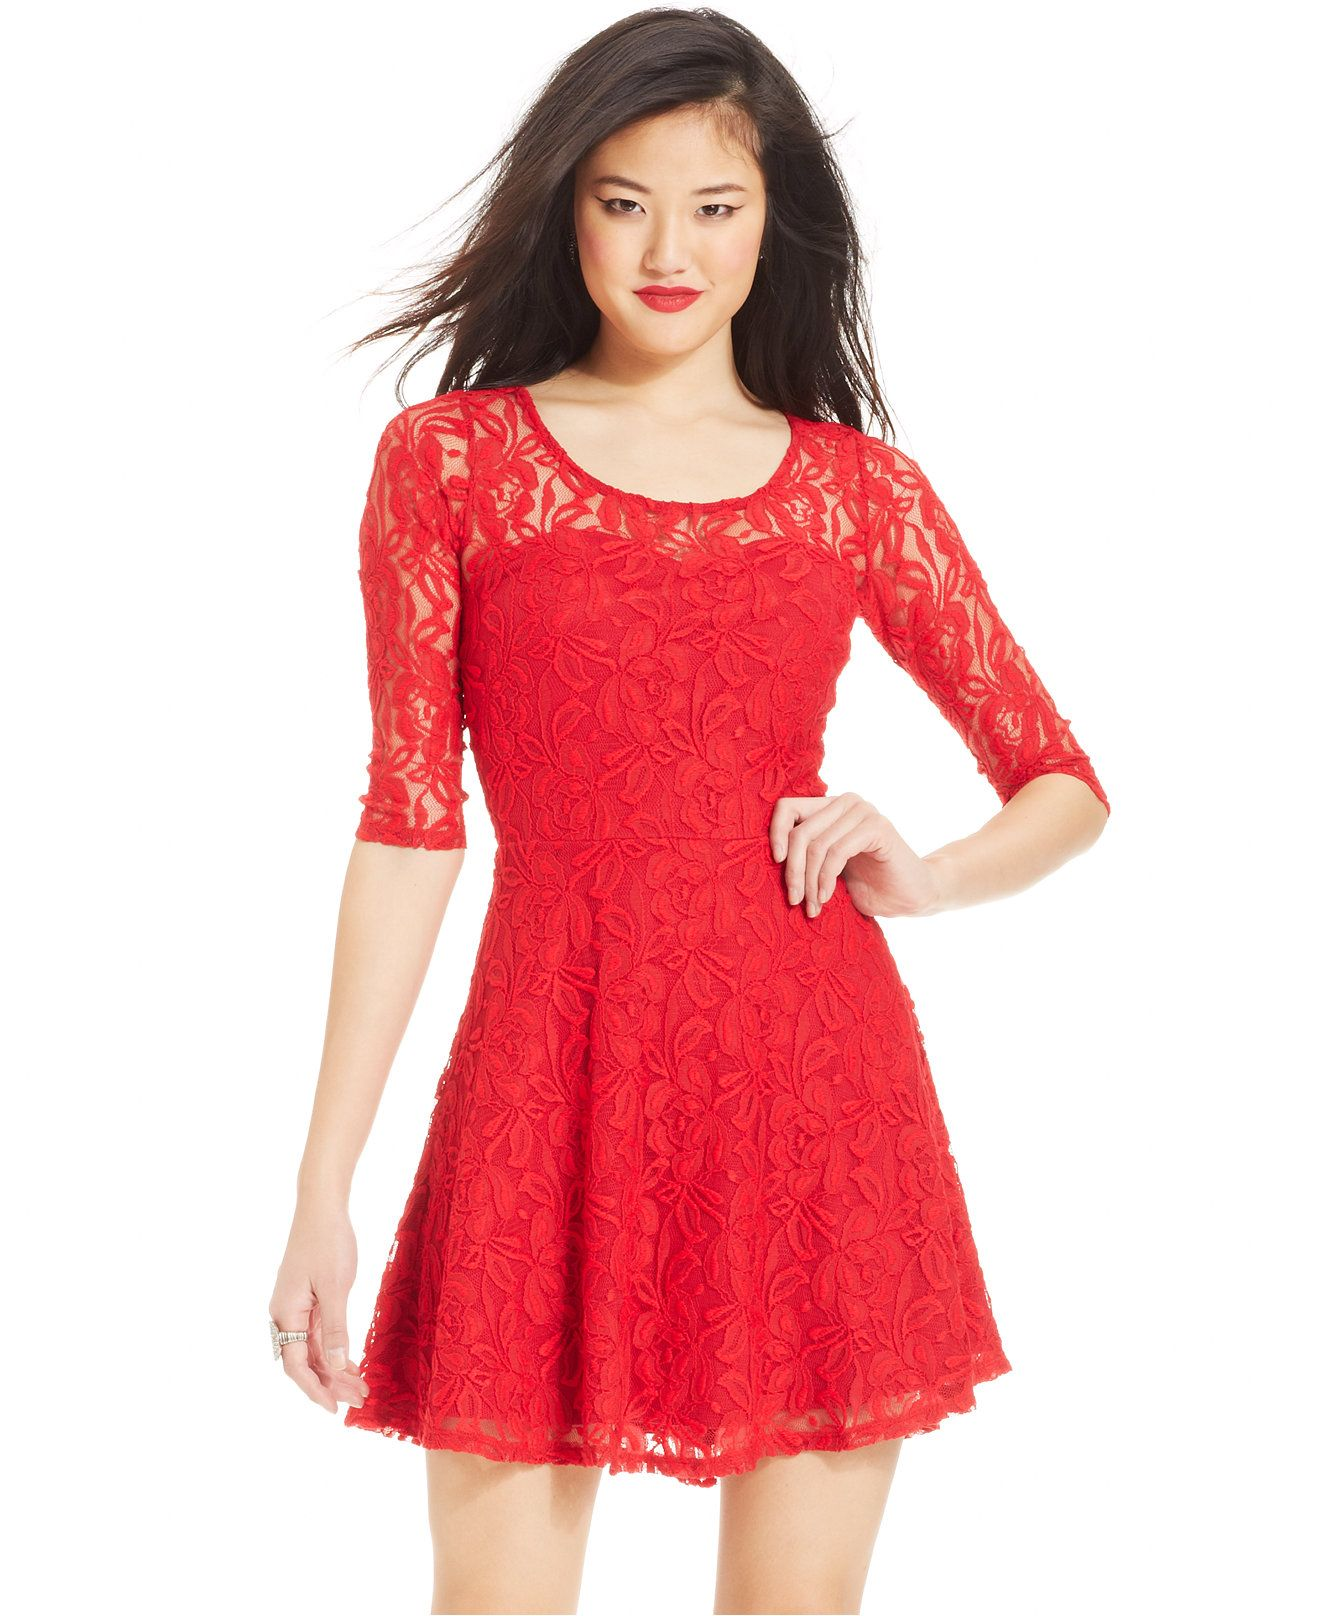 f7be260c34d Material Girl Short-Sleeve Lace Skater Dress - Juniors Dresses - Macy s